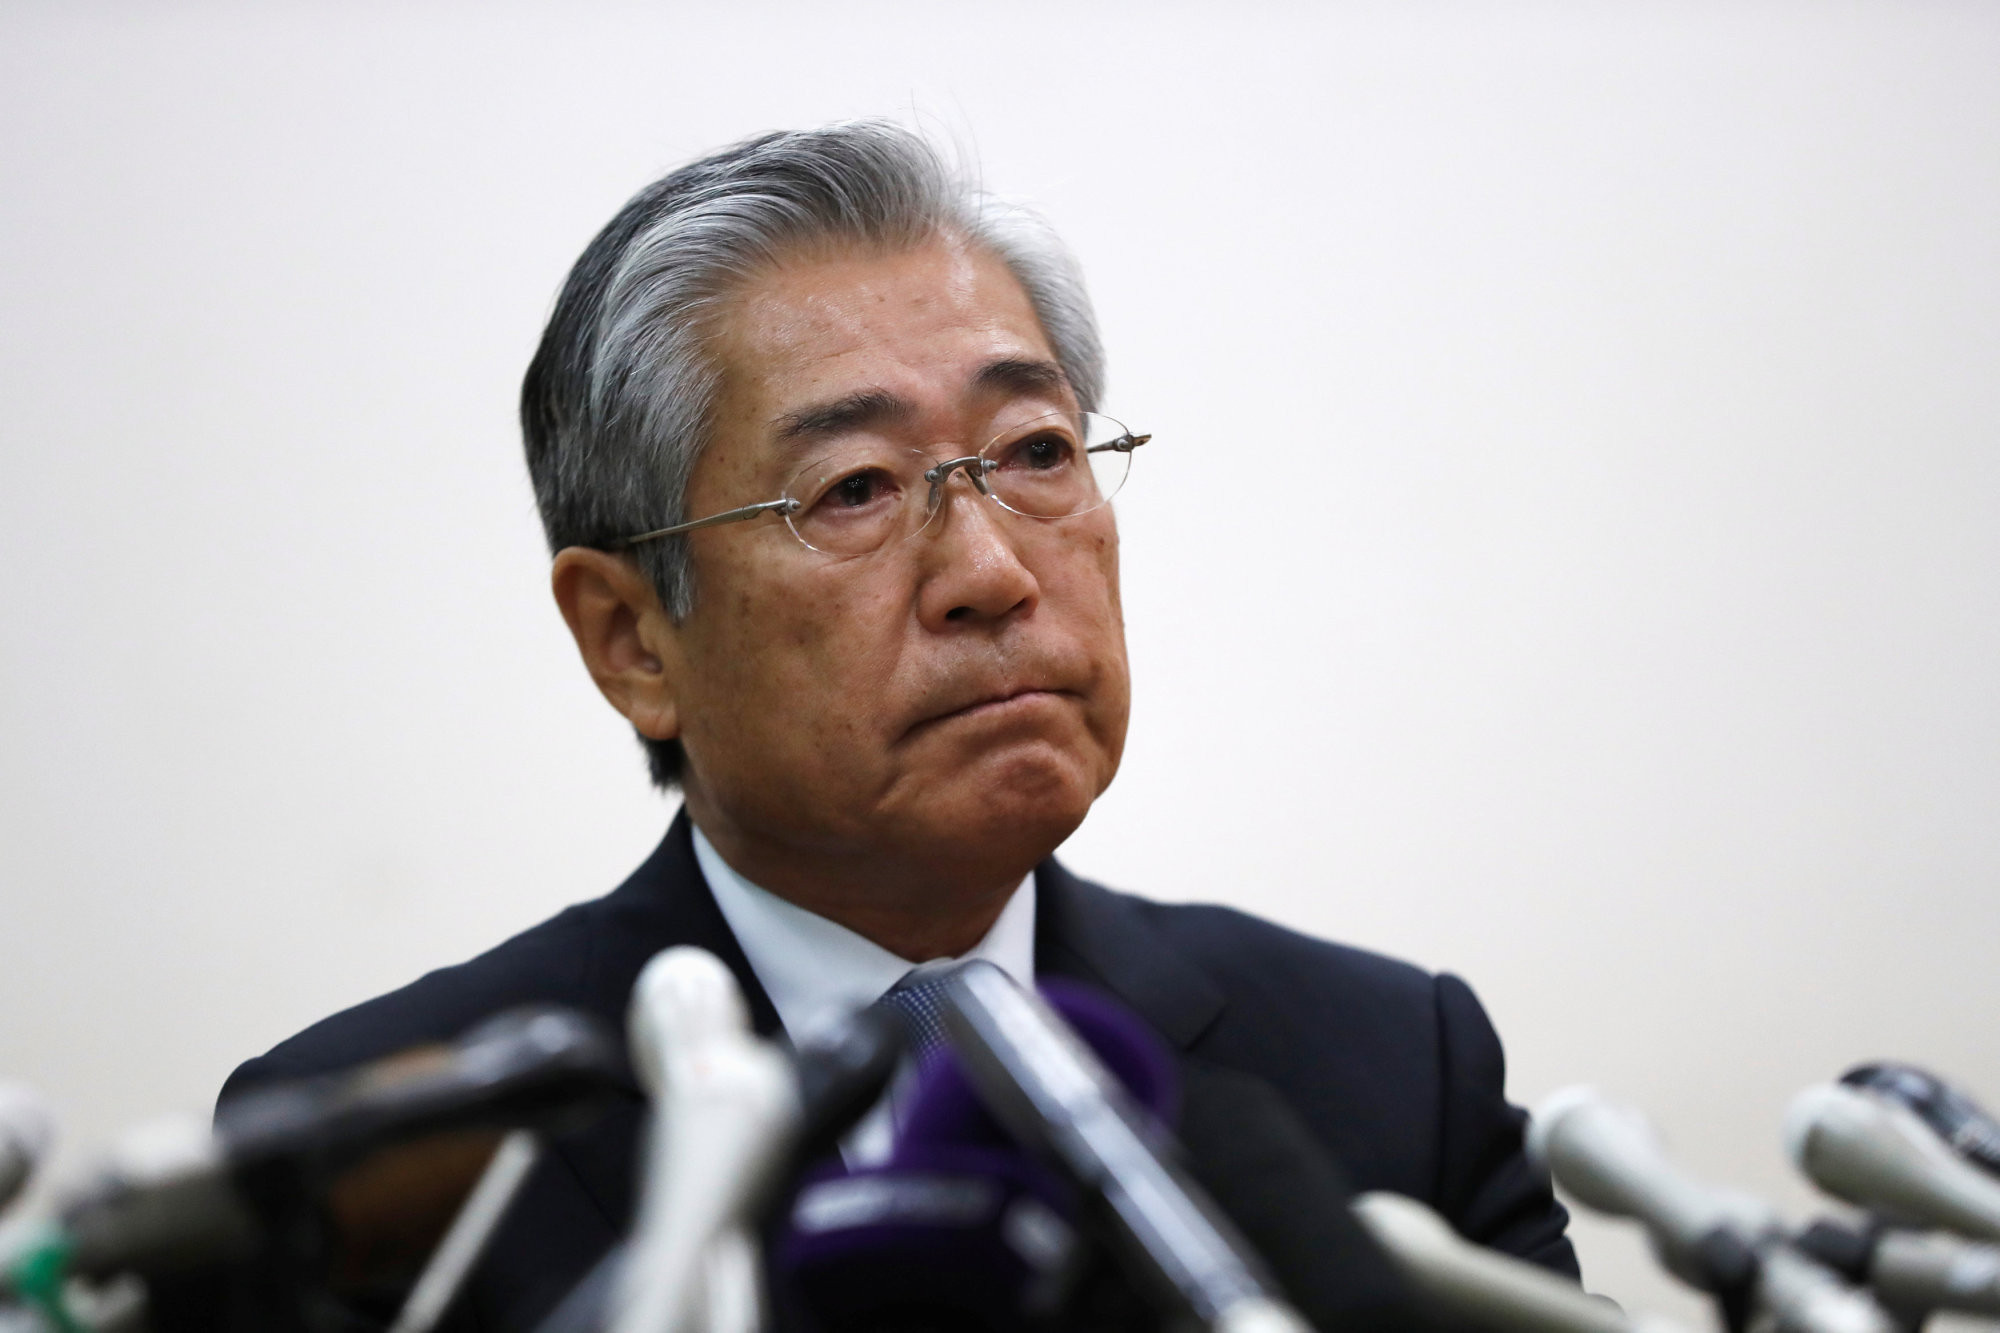 Tsunekazu Takeda, President of the Japanese Olympic Committee, has been under pressure since he was implicated in a bribery scandal linked to Tokyo's successful bid for the 2020 Olympic and Paralympic Games ©Getty Images